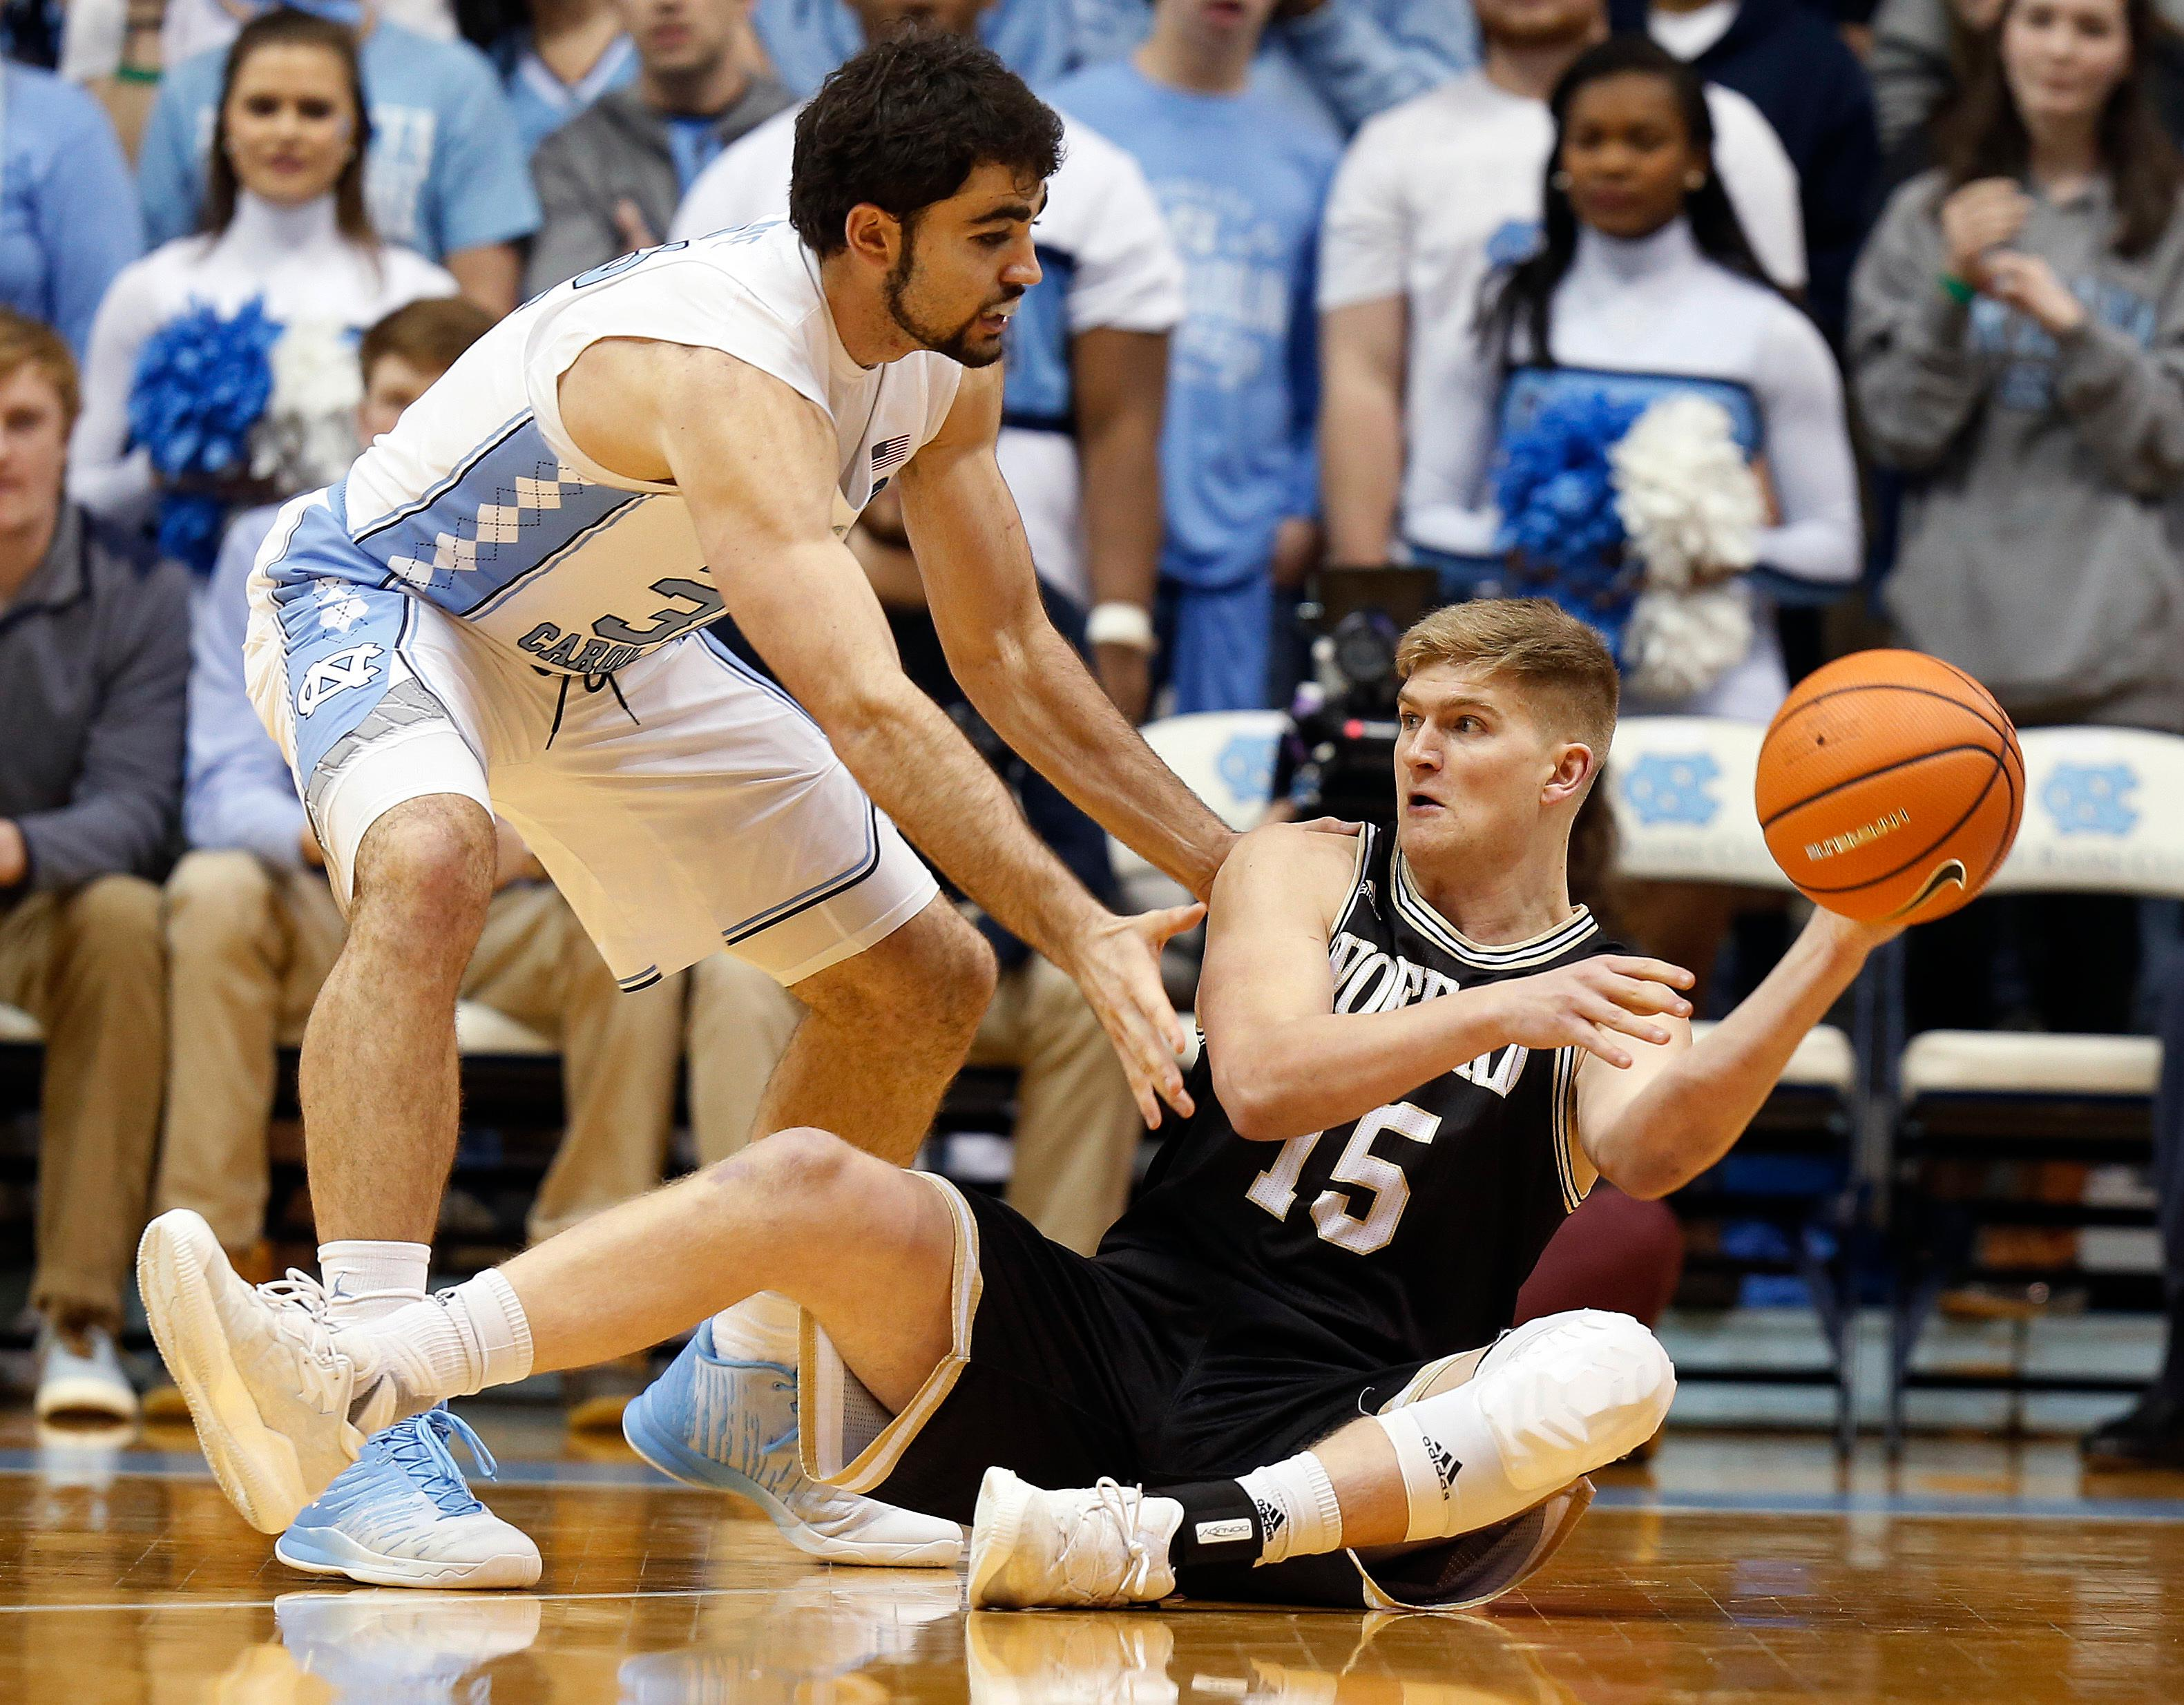 Wofford guard Trevor Stumpe (15) looks to make a pass under pressure from North Carolina forward Luke Maye during the first half of an NCAA college basketball game in Chapel Hill, N.C., Wednesday, Dec. 20, 2017. (AP Photo/Ellen Ozier)